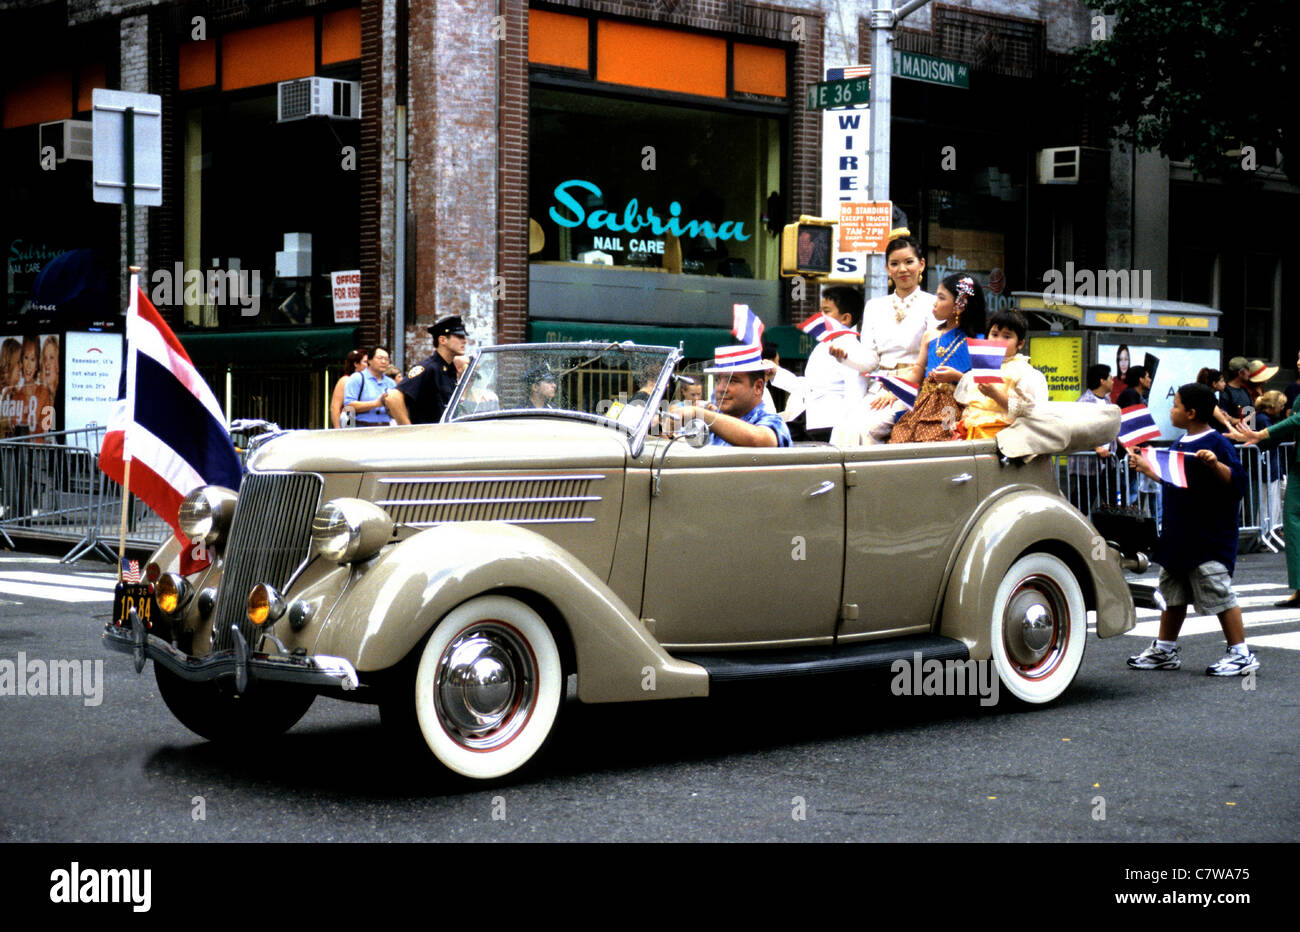 Vintage Ford car in a New York Parade USA - Stock Image